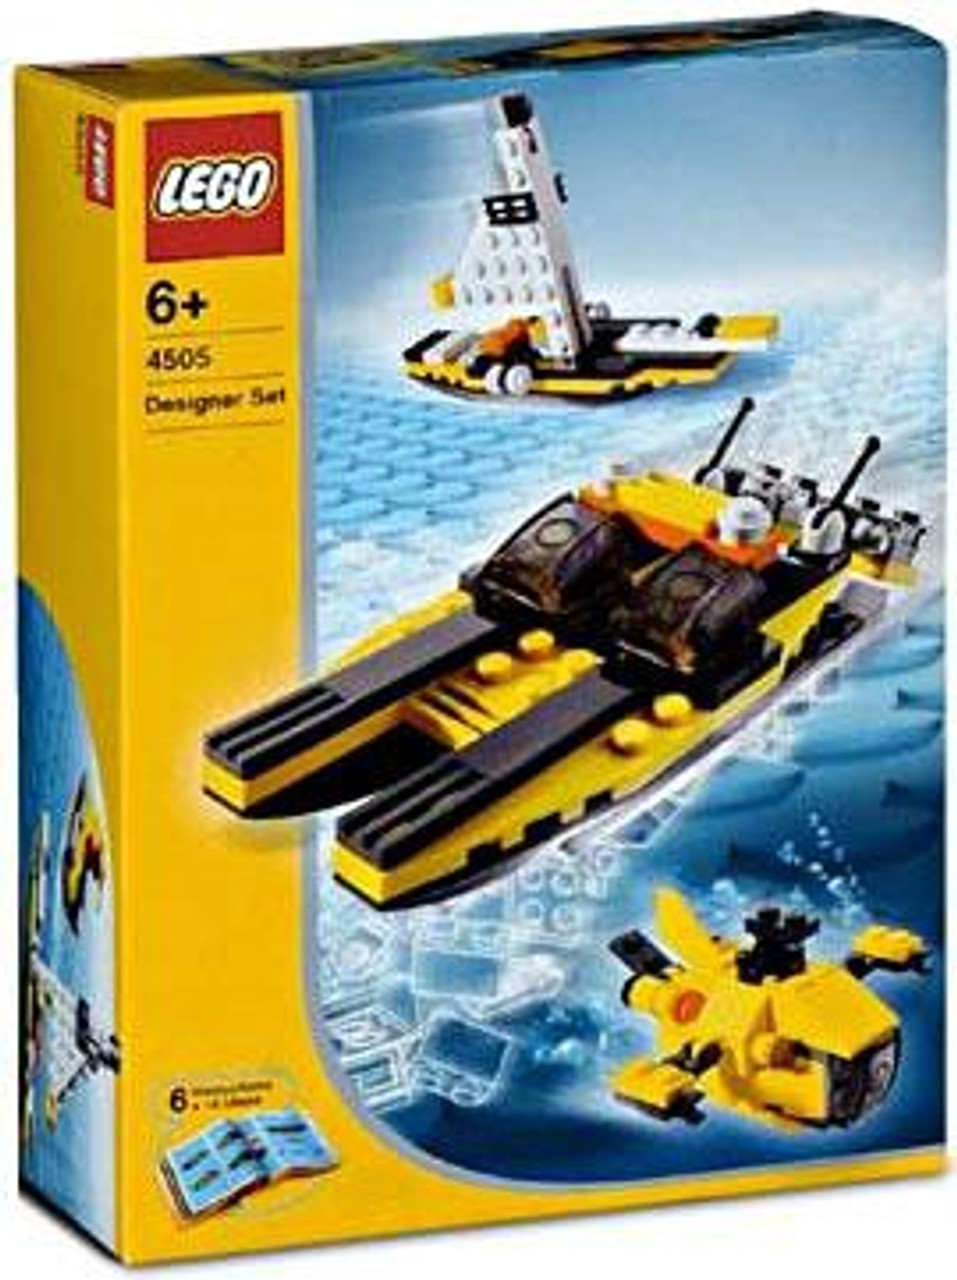 LEGO Sea Machines Set #4505